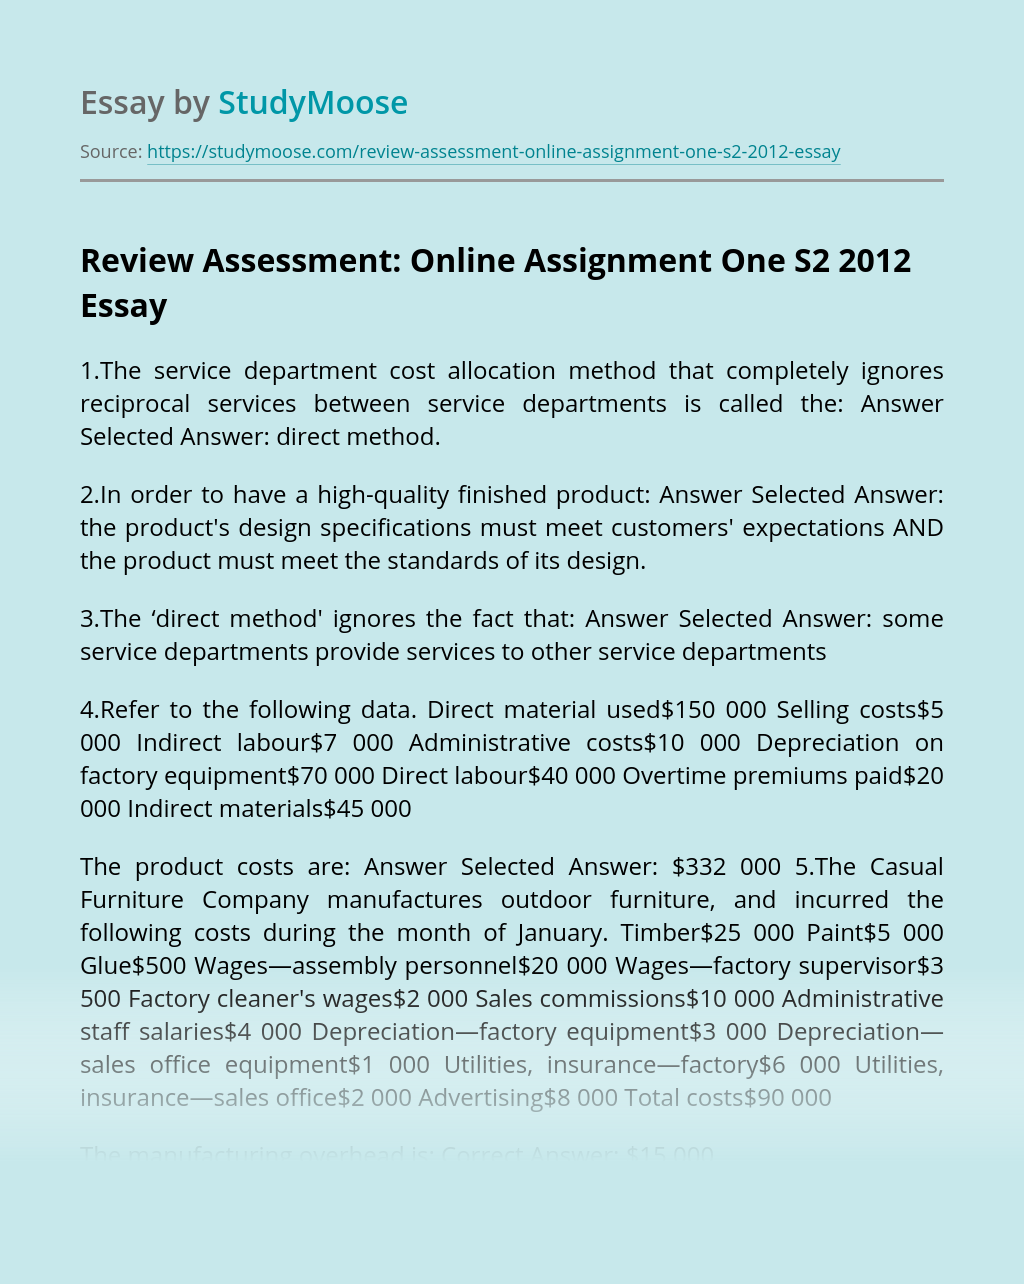 Review Assessment: Online Assignment One S2 2012